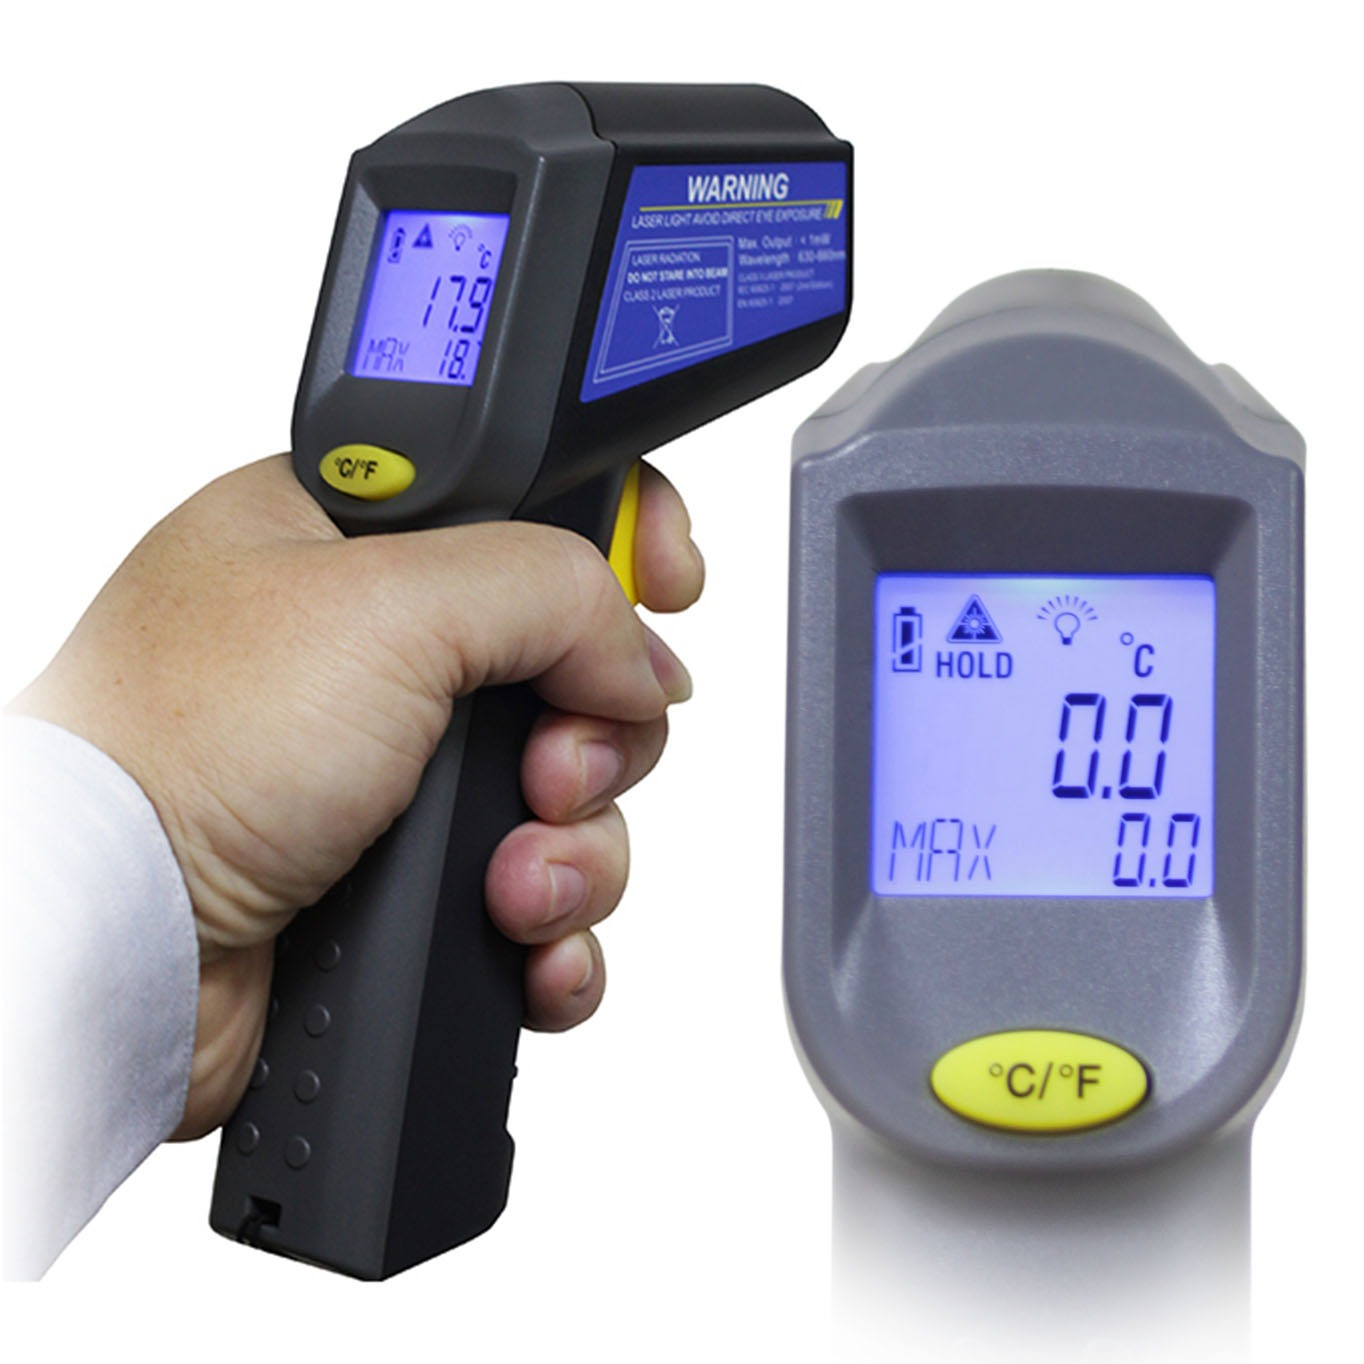 Bicycle / Motorcycle Infrared Thermometer for Testing Equipment made by ECPAL VEHICLE CO., LTD. 威爾可有限公司 - MatchSupplier.com